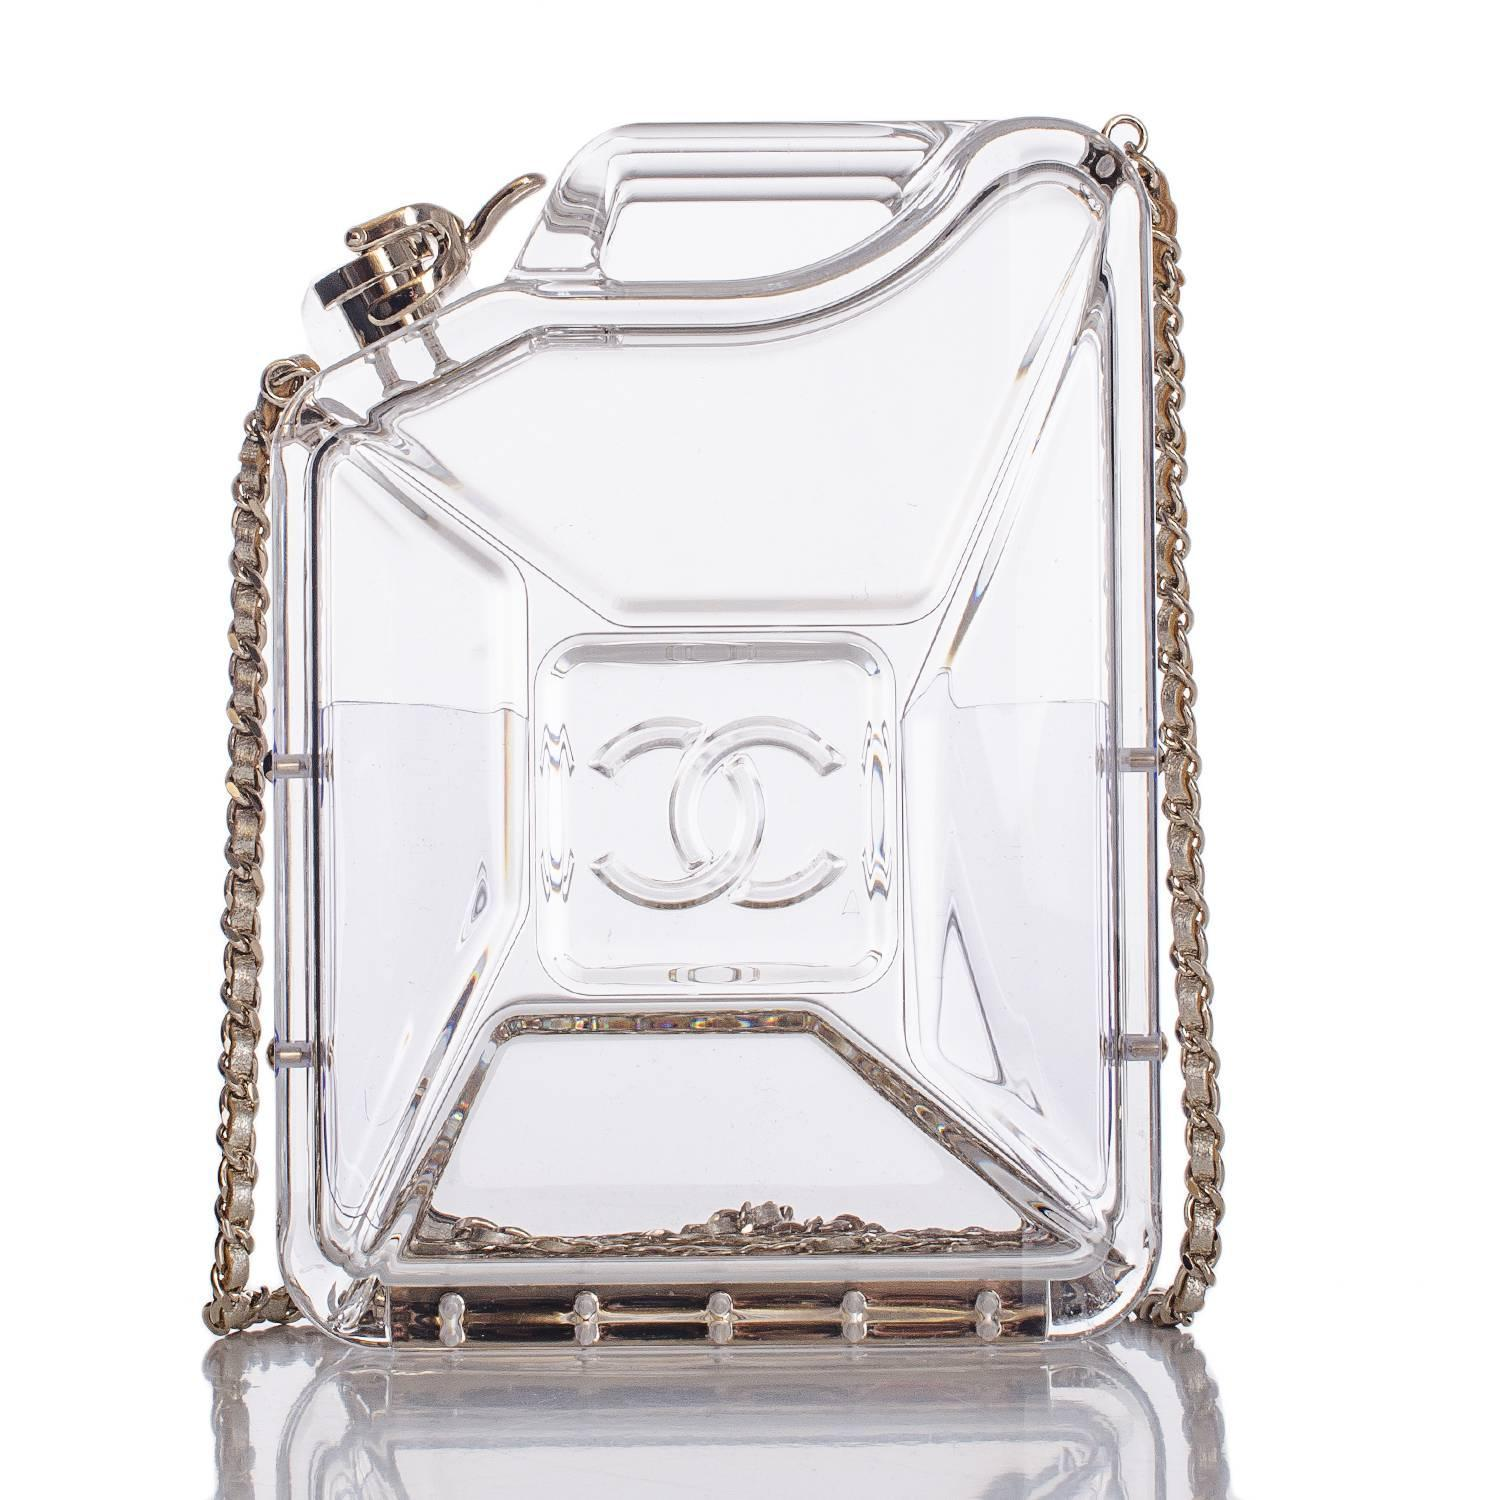 Chanel hologram cc minaudiere clutch